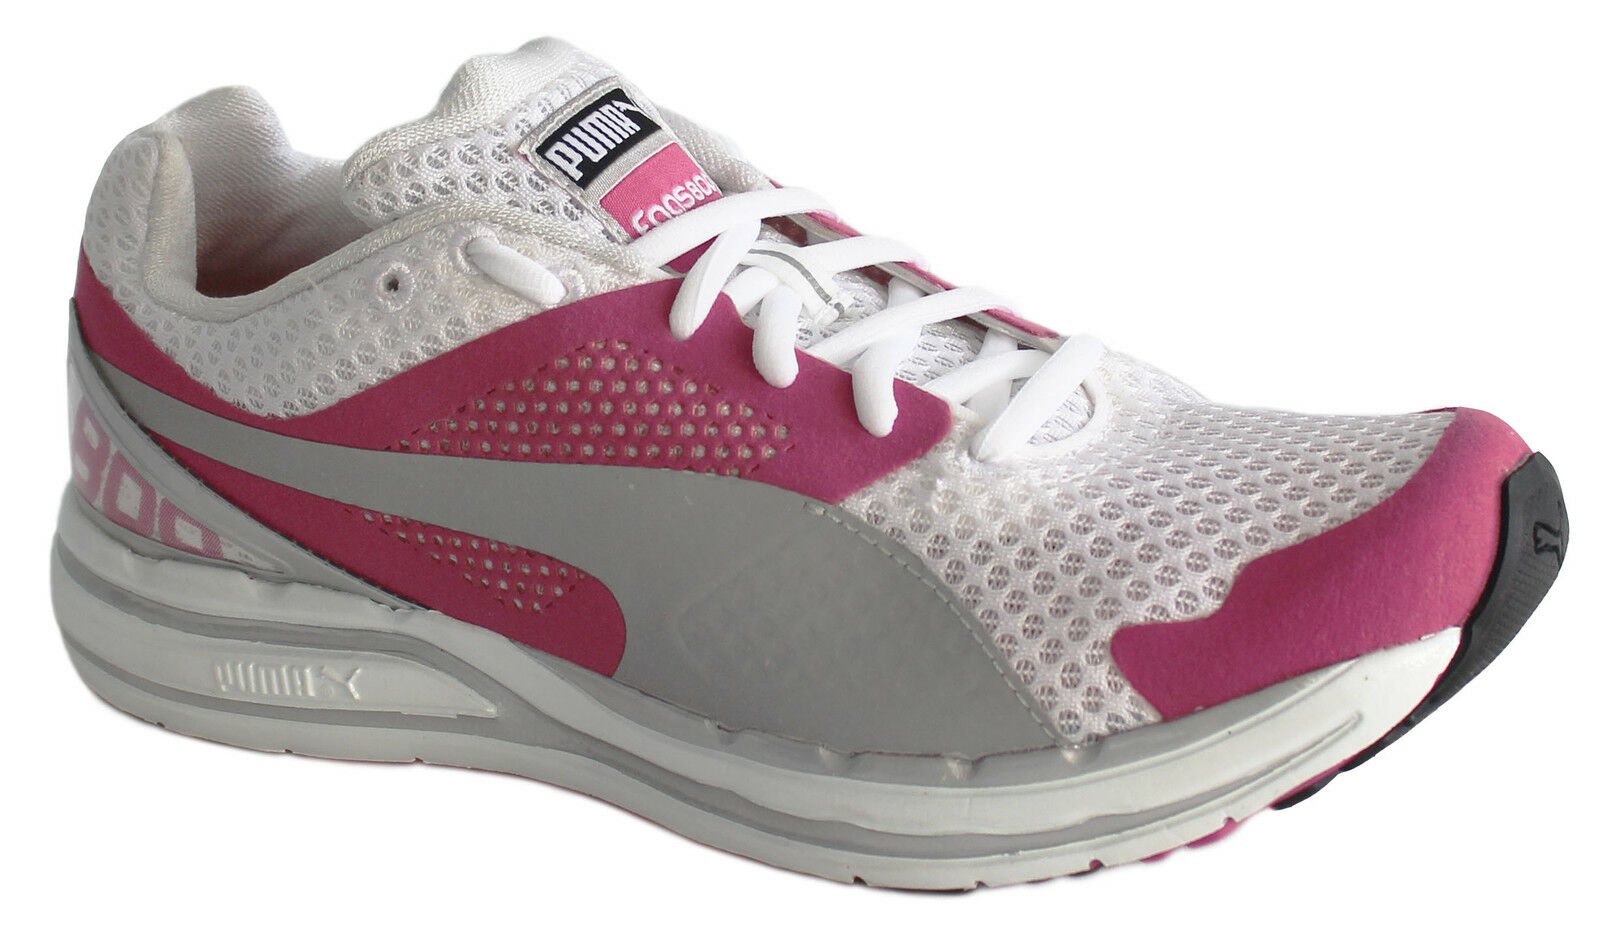 c7806d52781 Puma Faas 800 Womens Trainers Running Shoes Rose White Lace Up ...